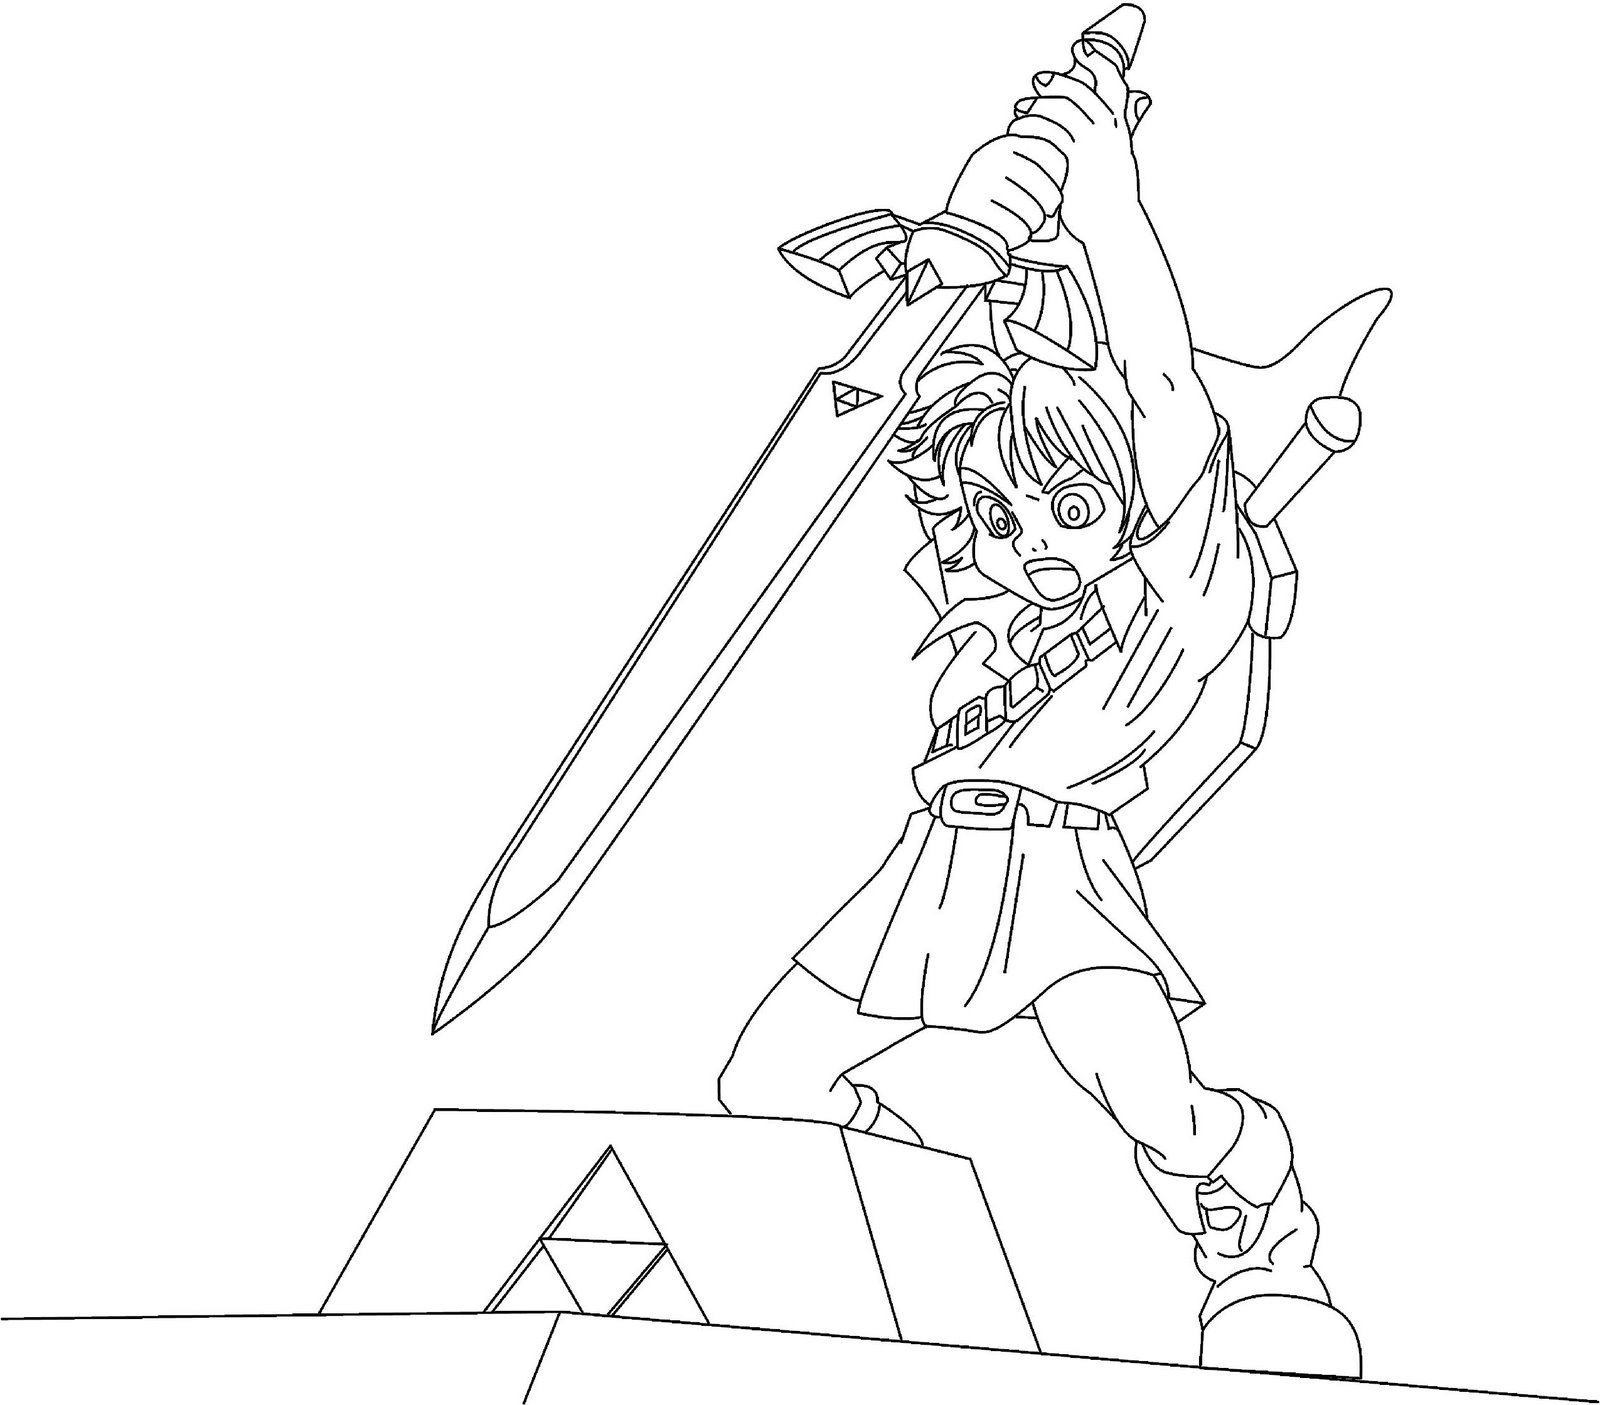 Zelda coloring pages to print